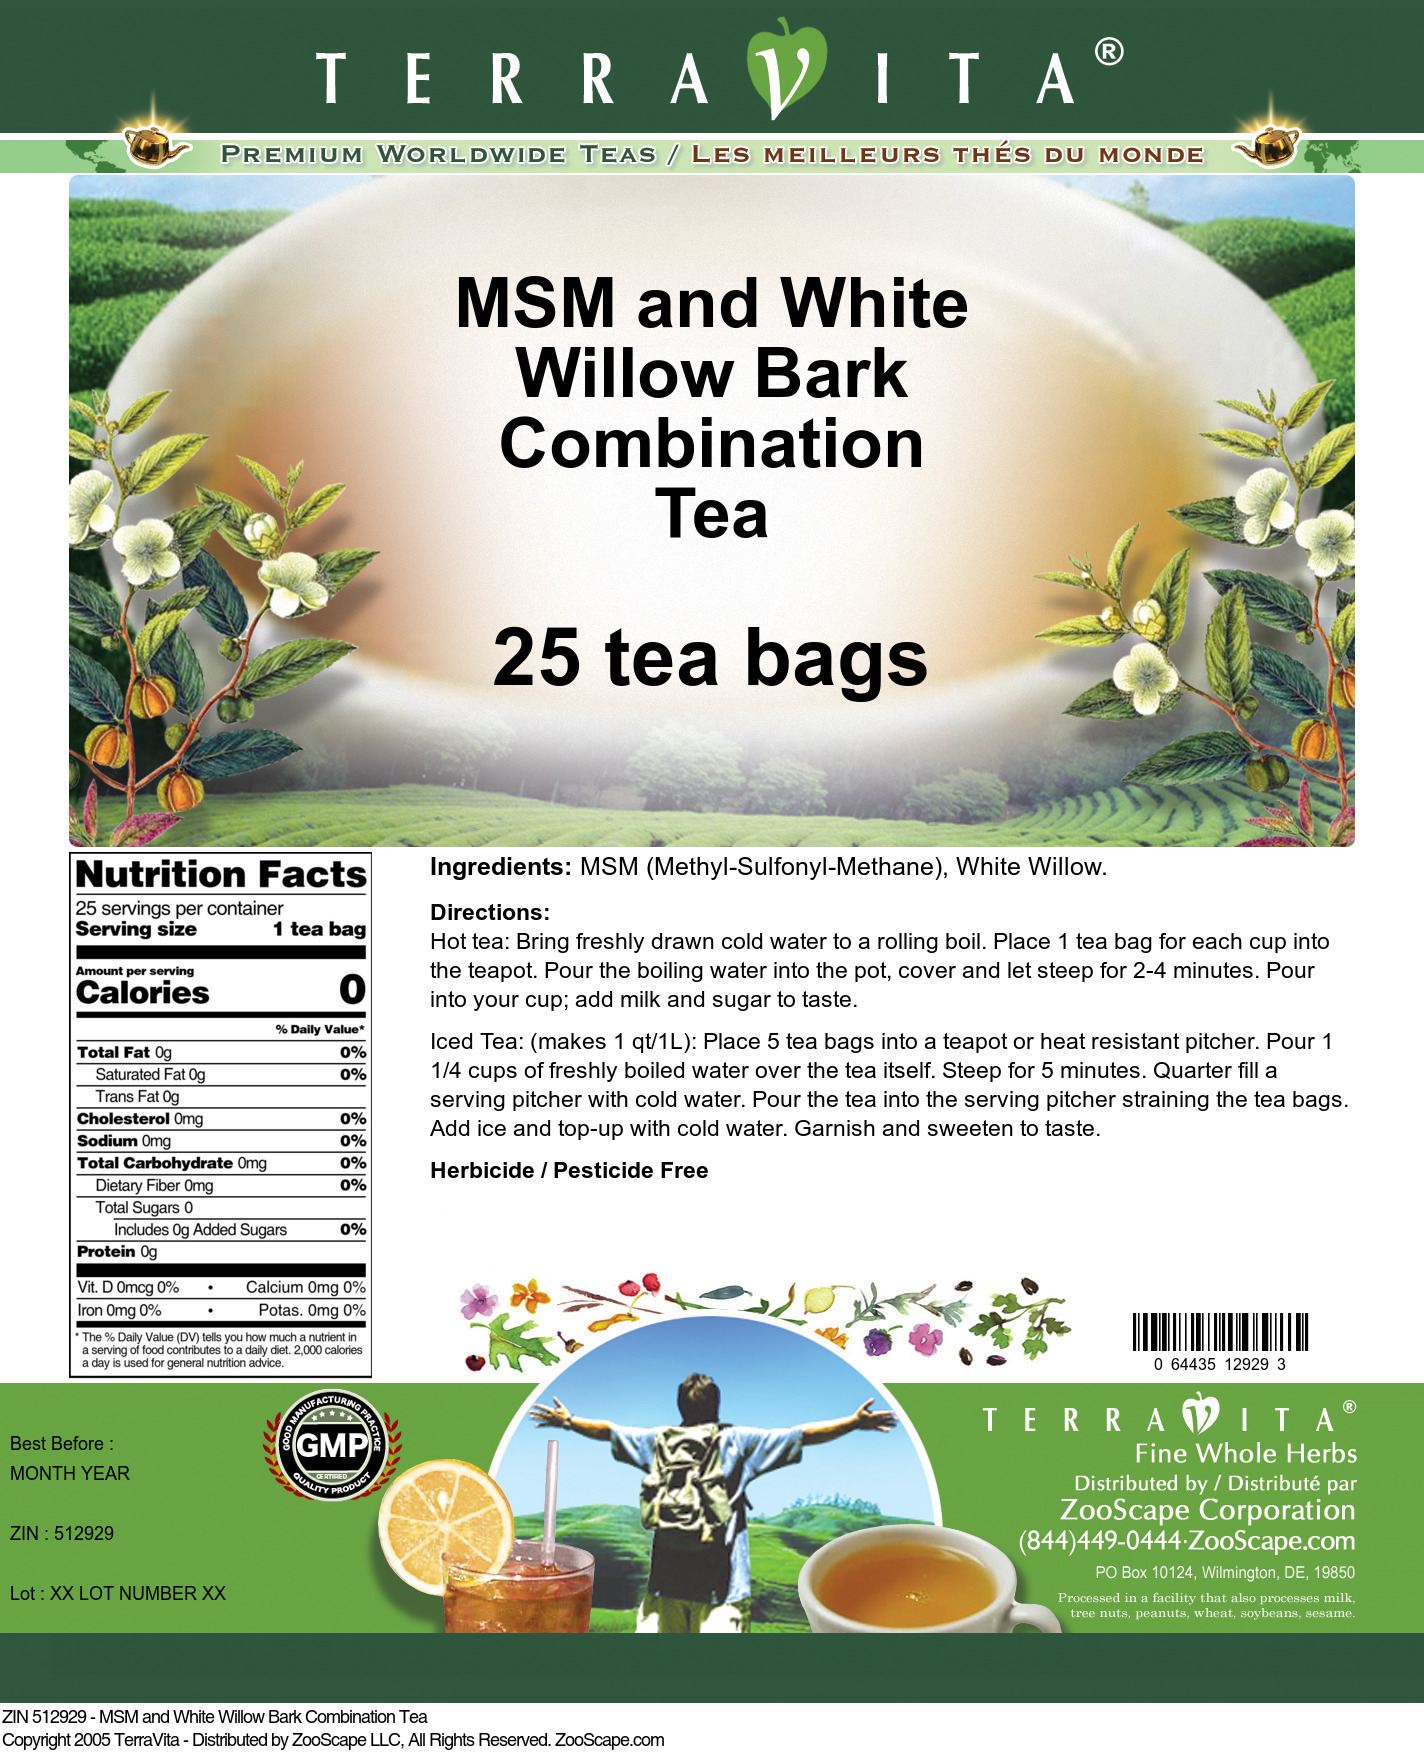 MSM and White Willow Bark Combination Tea